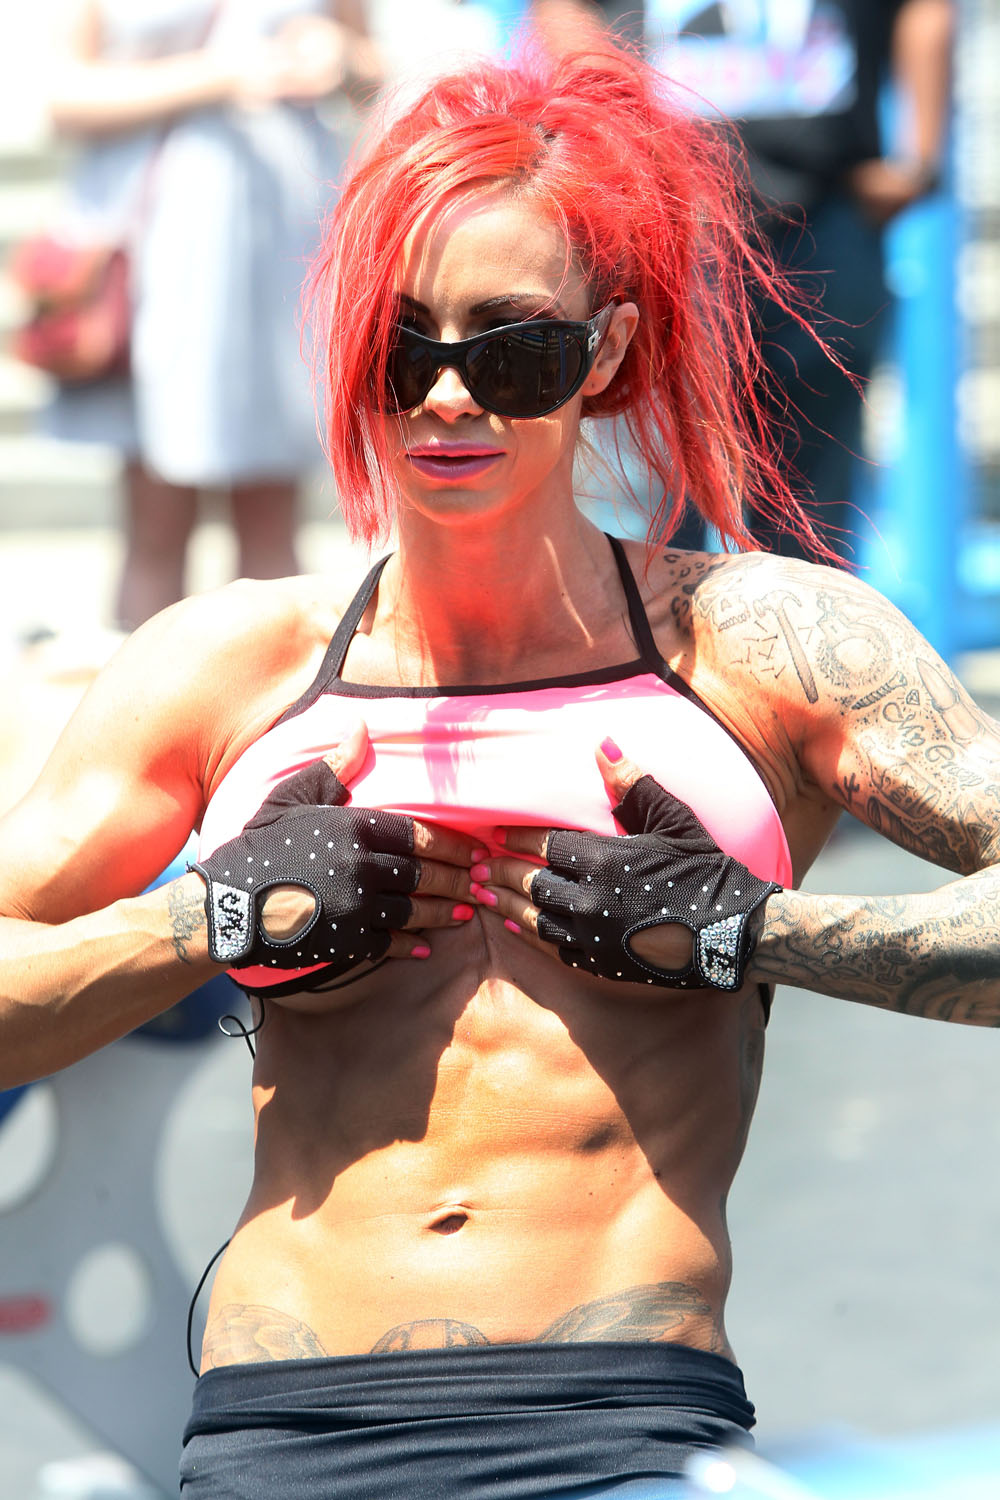 free-paparazzi-upskirt-photos-of-jodie-marsh-transsexual-with-biggest-breast-implants-tits